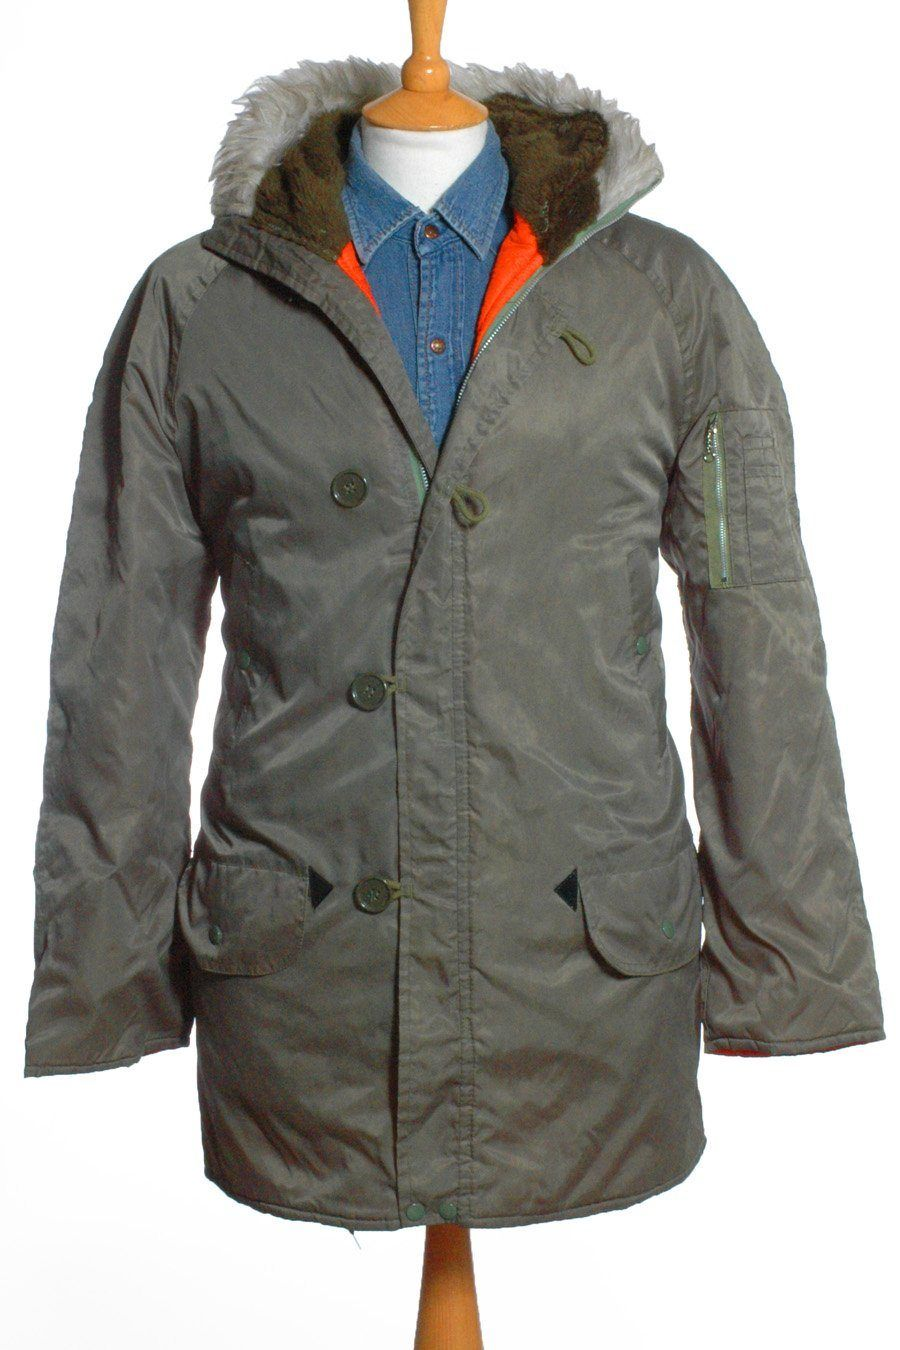 Green parka with orange zips